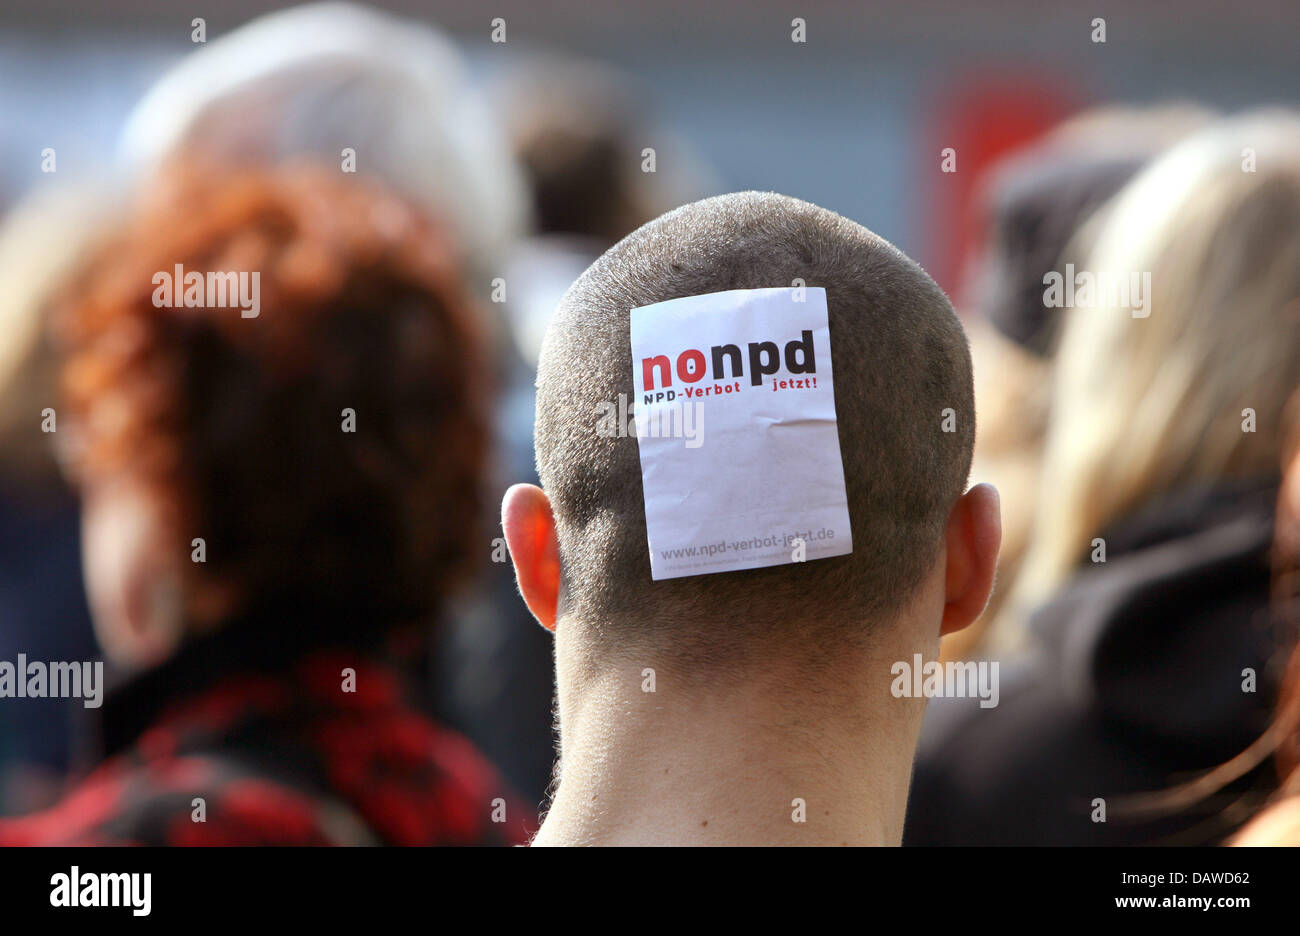 Counterdemonstrators protest a rally of rightist-extremist party NPD in Luebeck, Germany, Saturday, 31 March 2007. Stock Photo